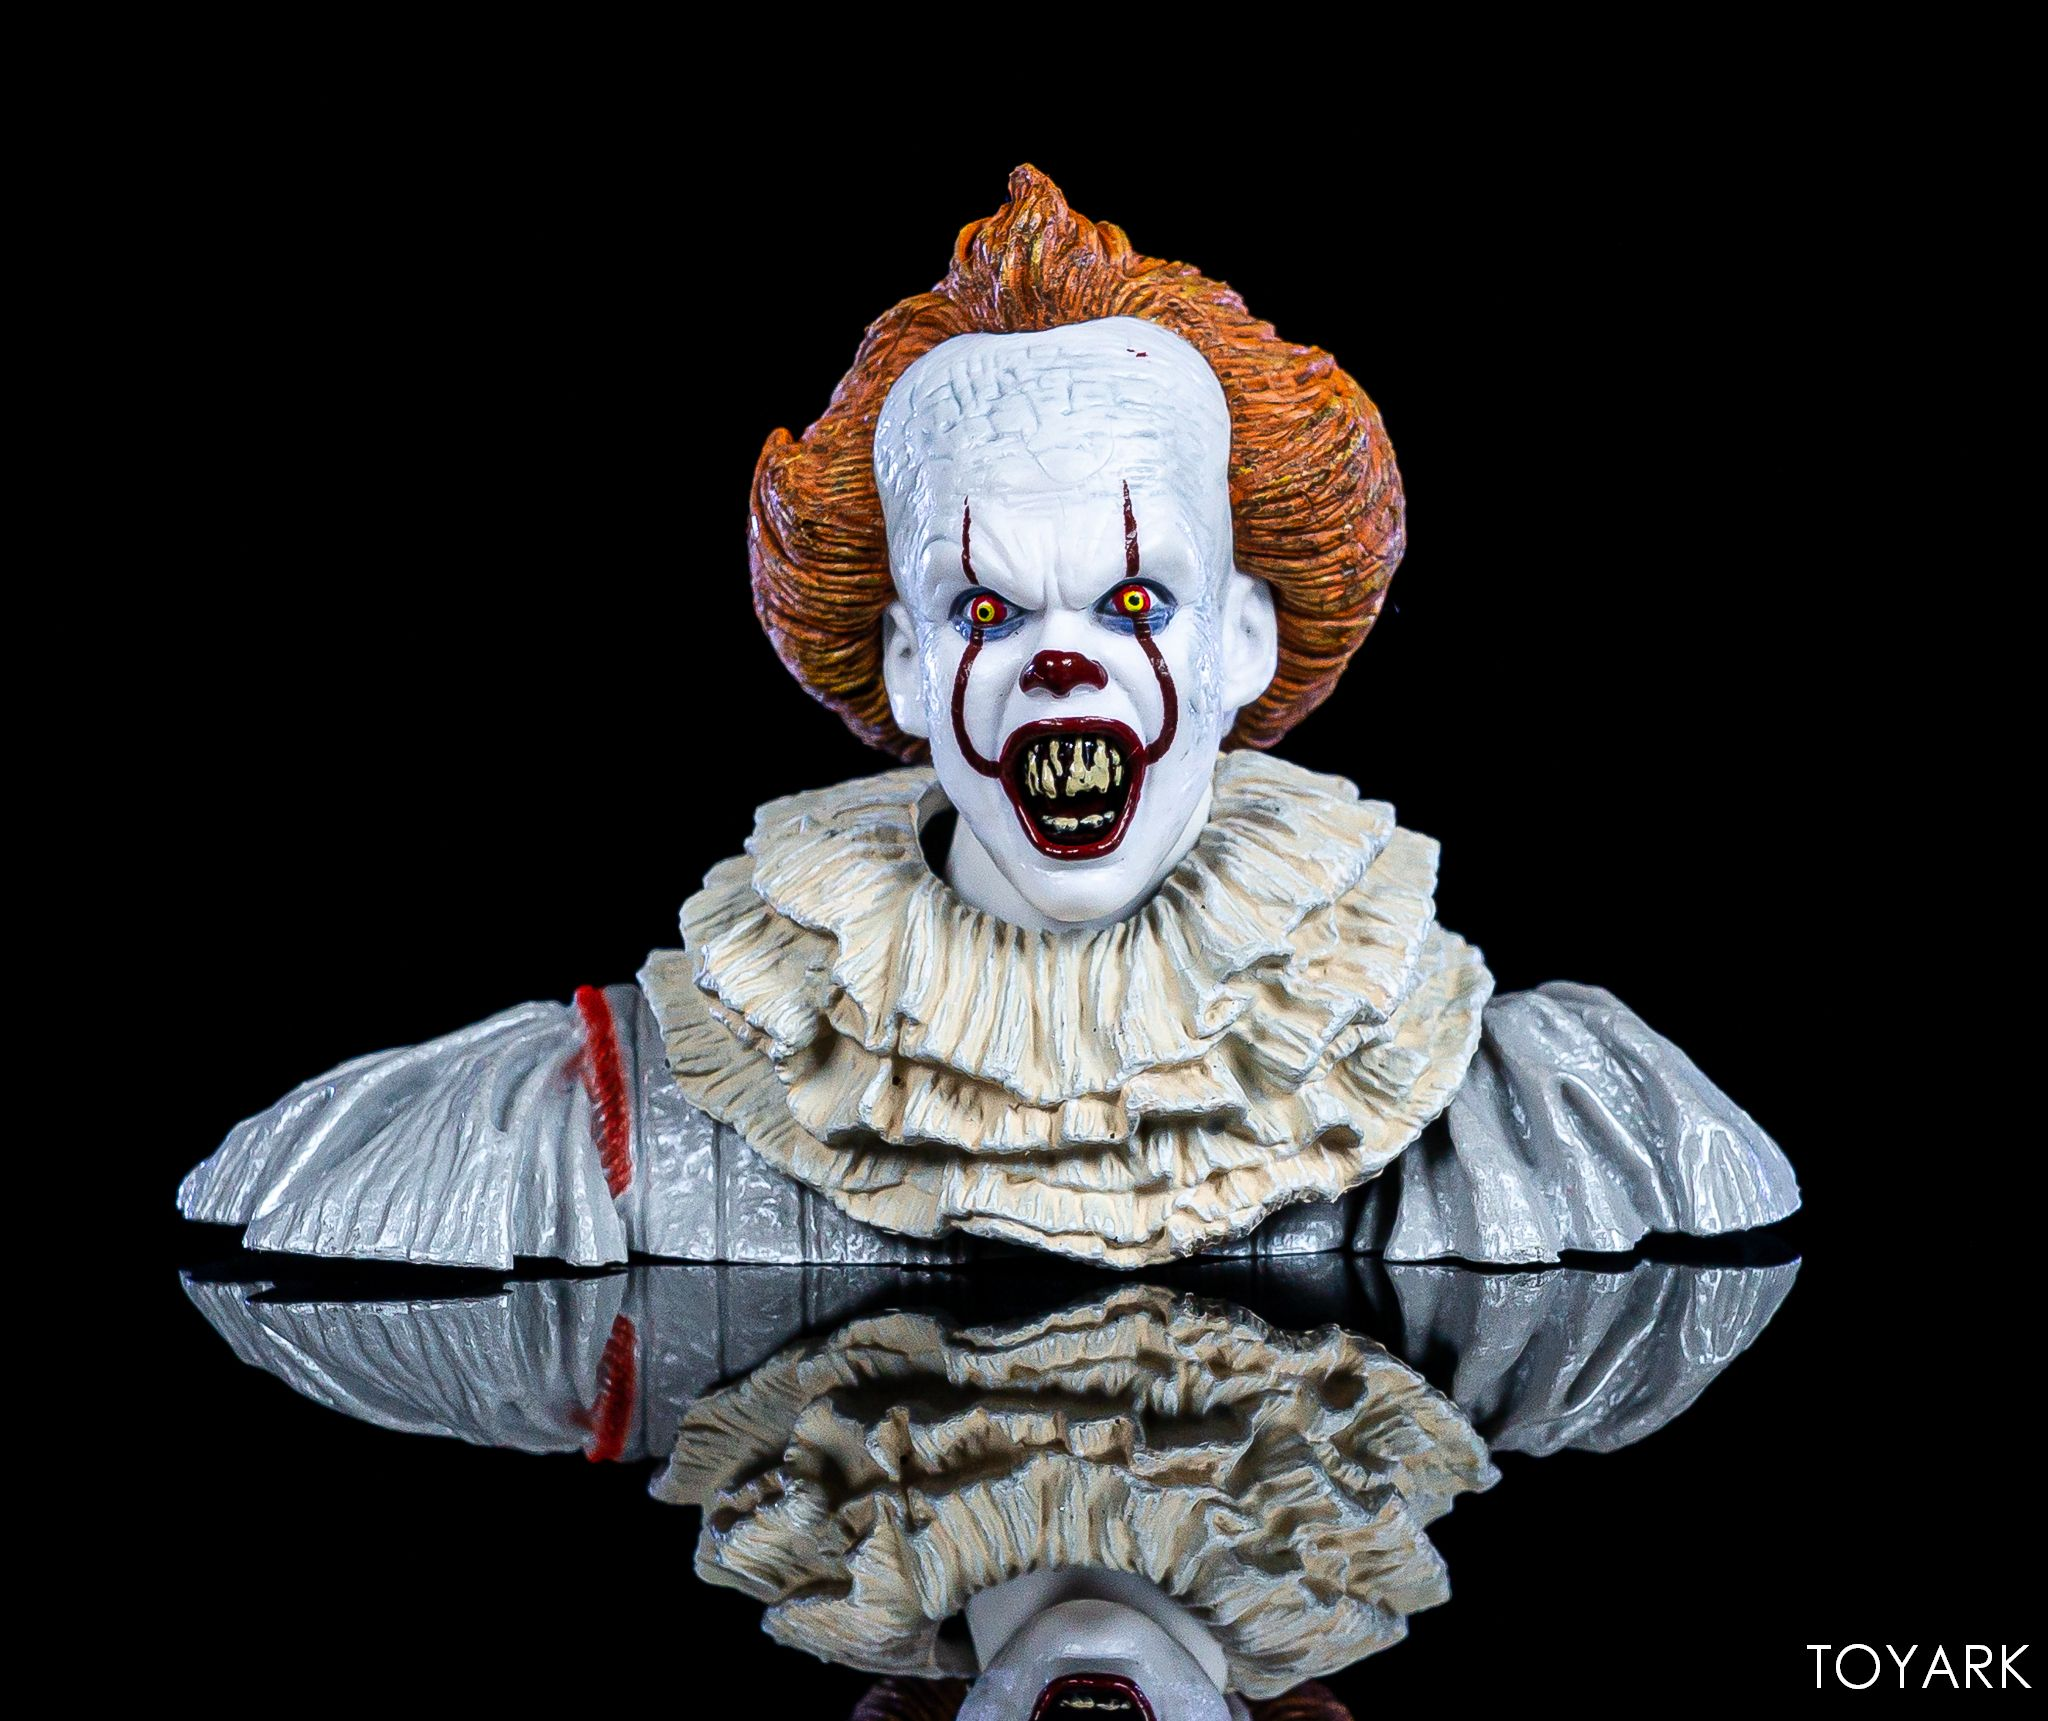 https://news.toyark.com/wp-content/uploads/sites/4/2019/05/NECA-Pennywise-Accessory-Set-011.jpg